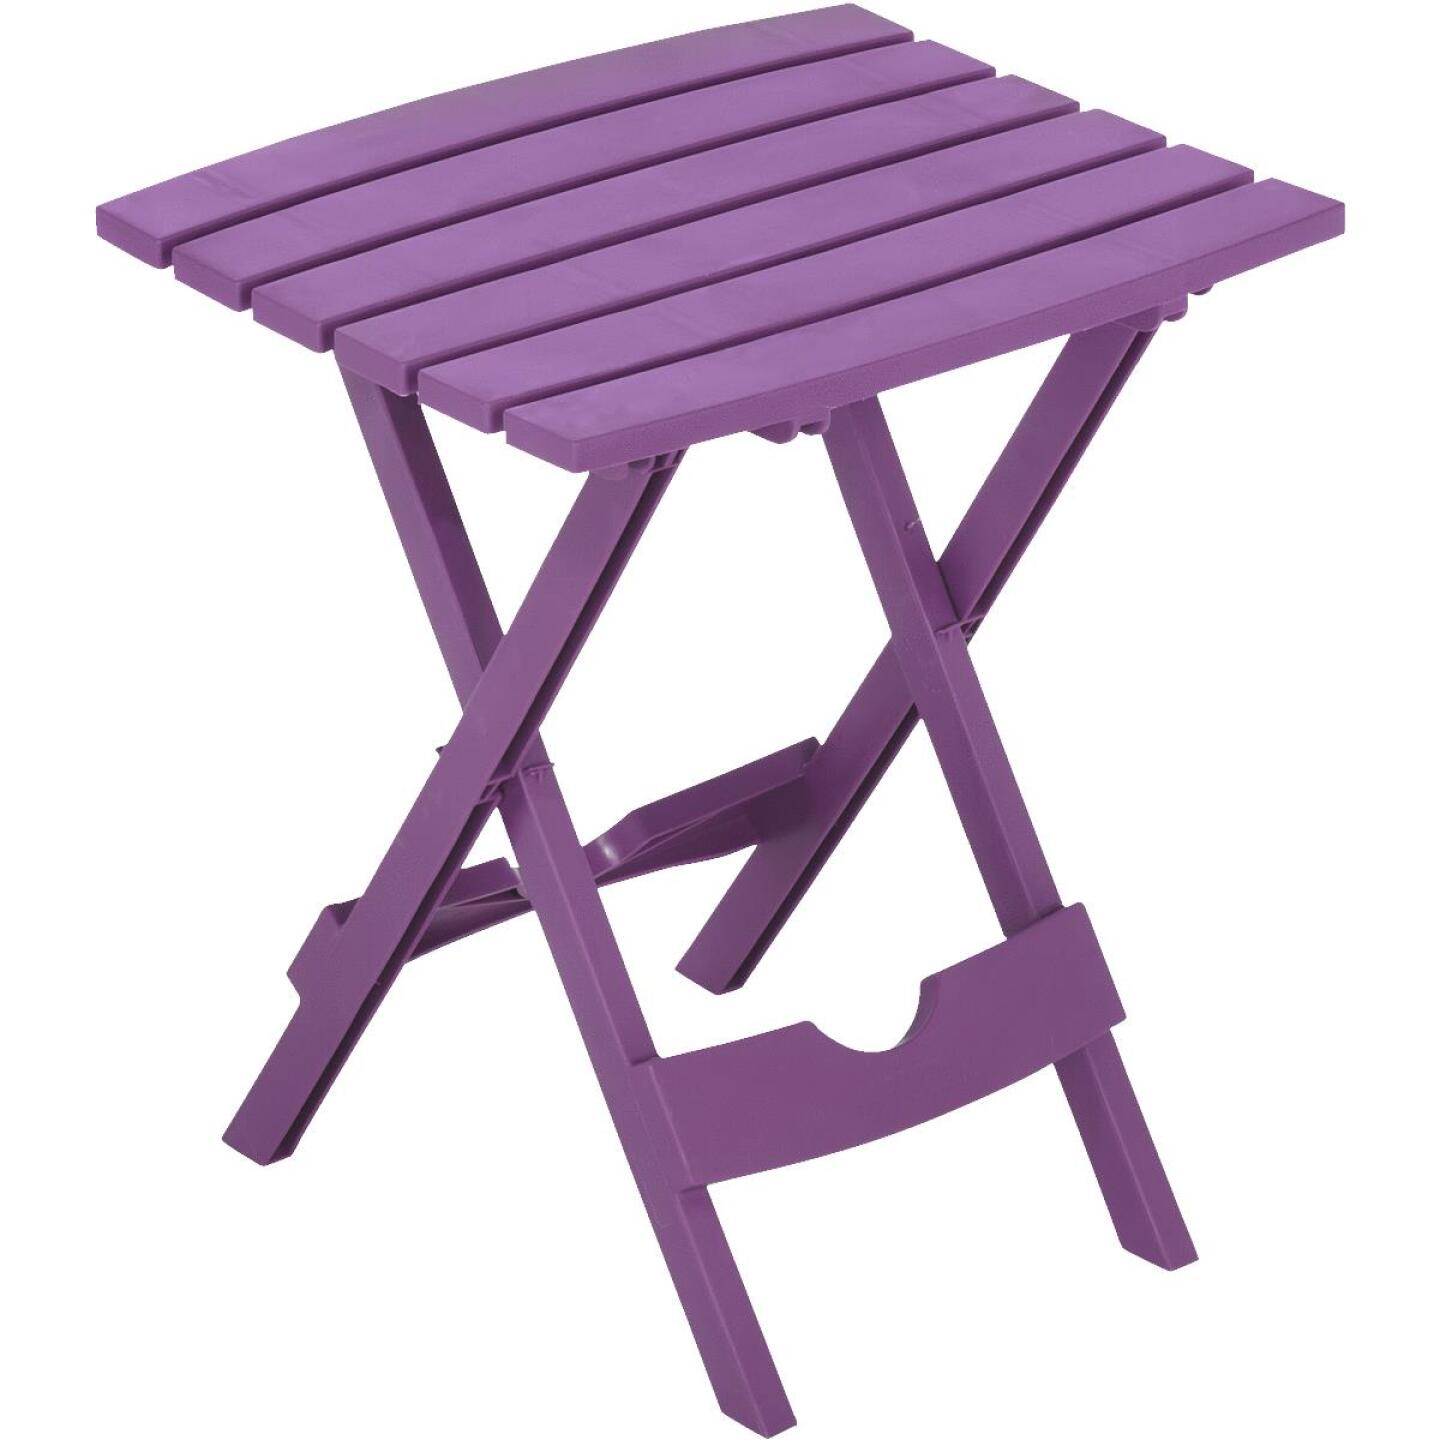 Adams Quik-Fold Violet 15 In. x 17.5 In. Rectangle Resin Folding Side Table Image 1